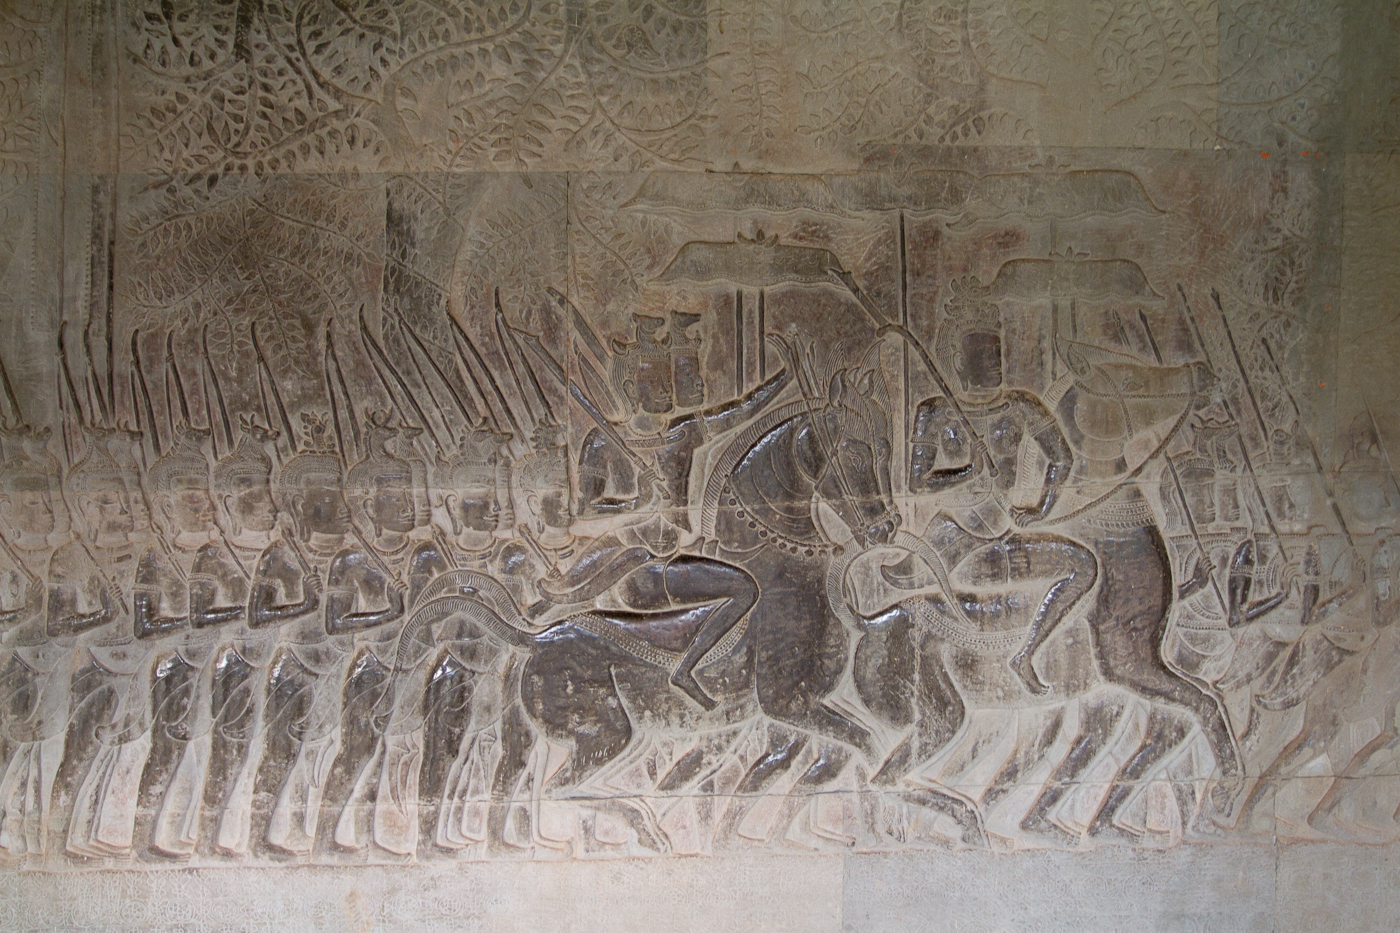 The detailed carvings were impressive.